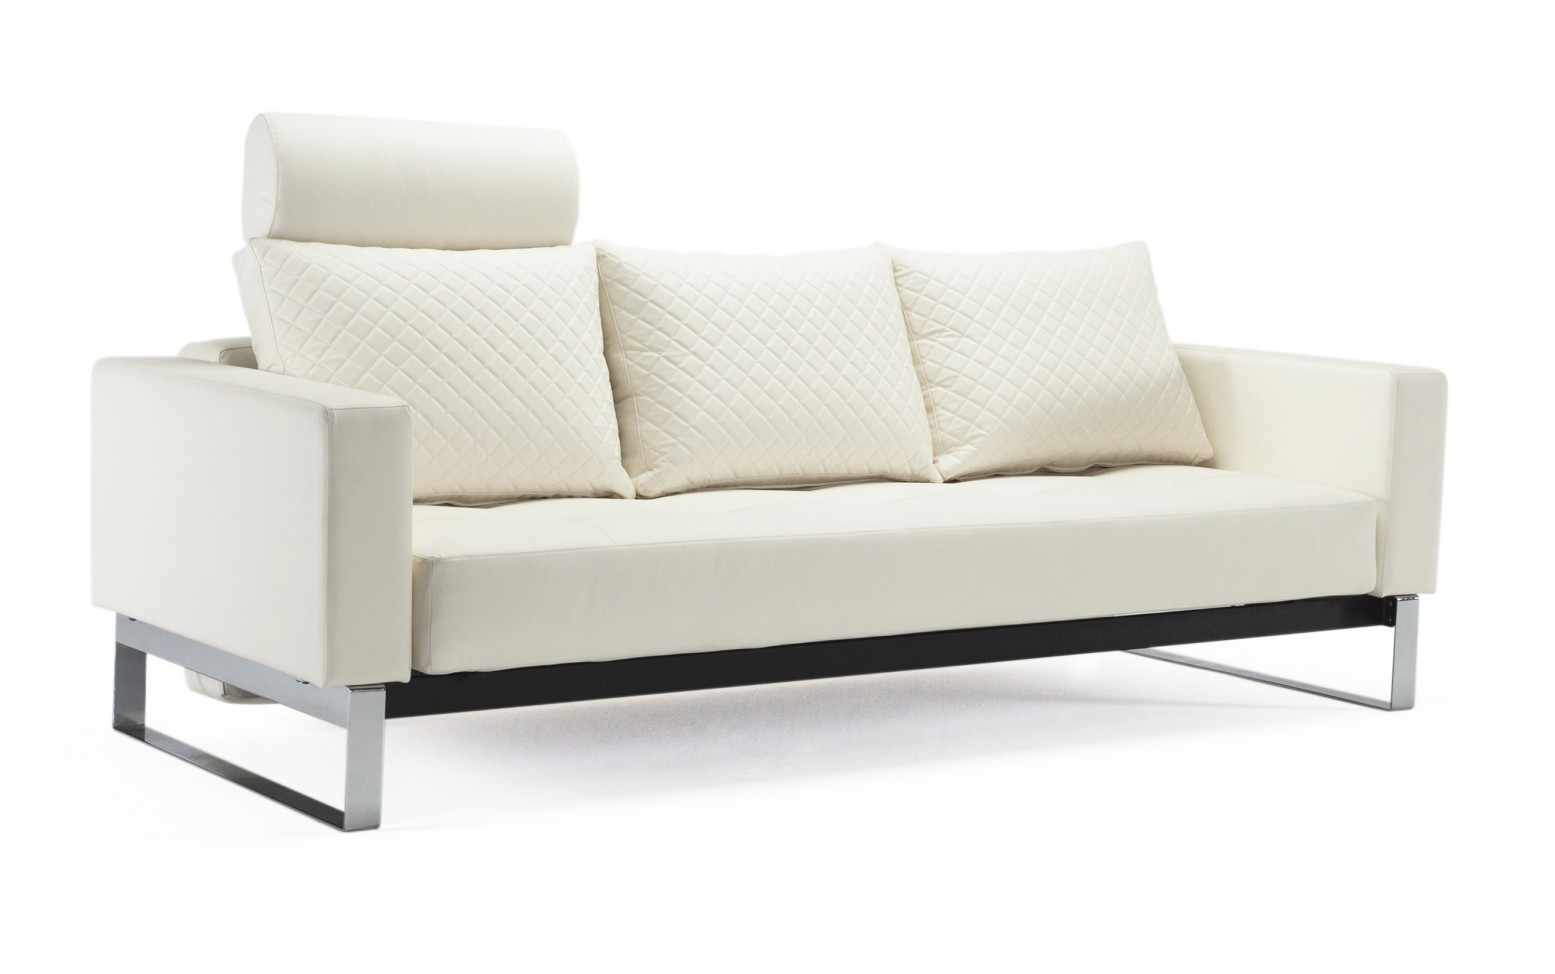 Cassius Quilt Deluxe Full Size Sofa Bed, 588 Leather Look White PU +  Chromed Legs by Innovation Living